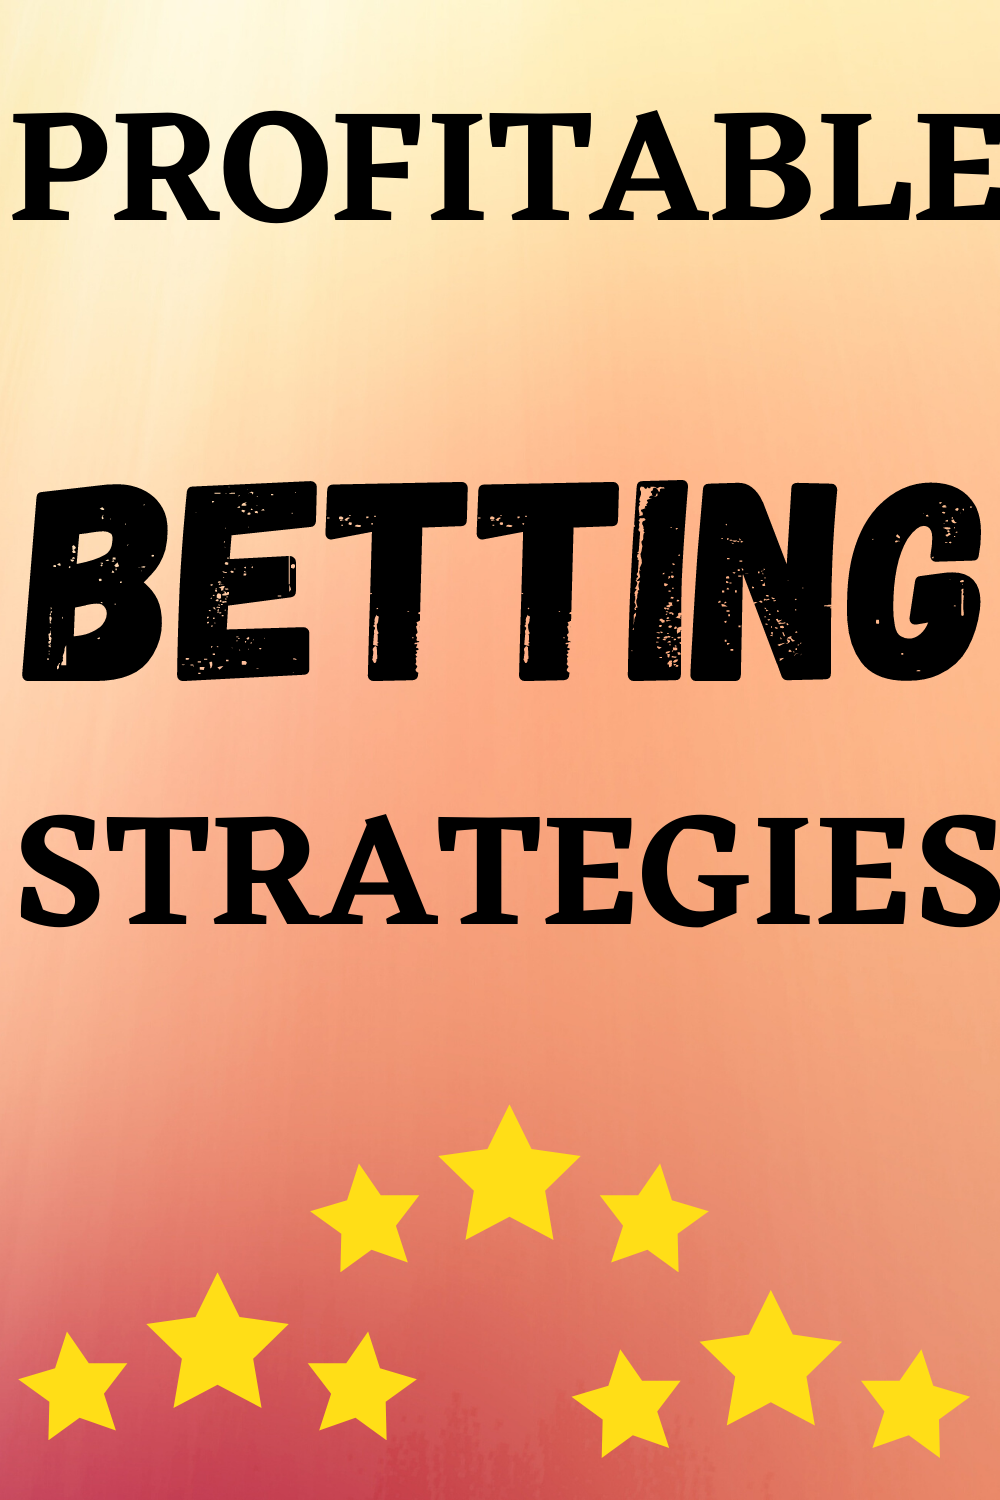 Sports betting for profit zahnarzt dr. bettinger pforzheim